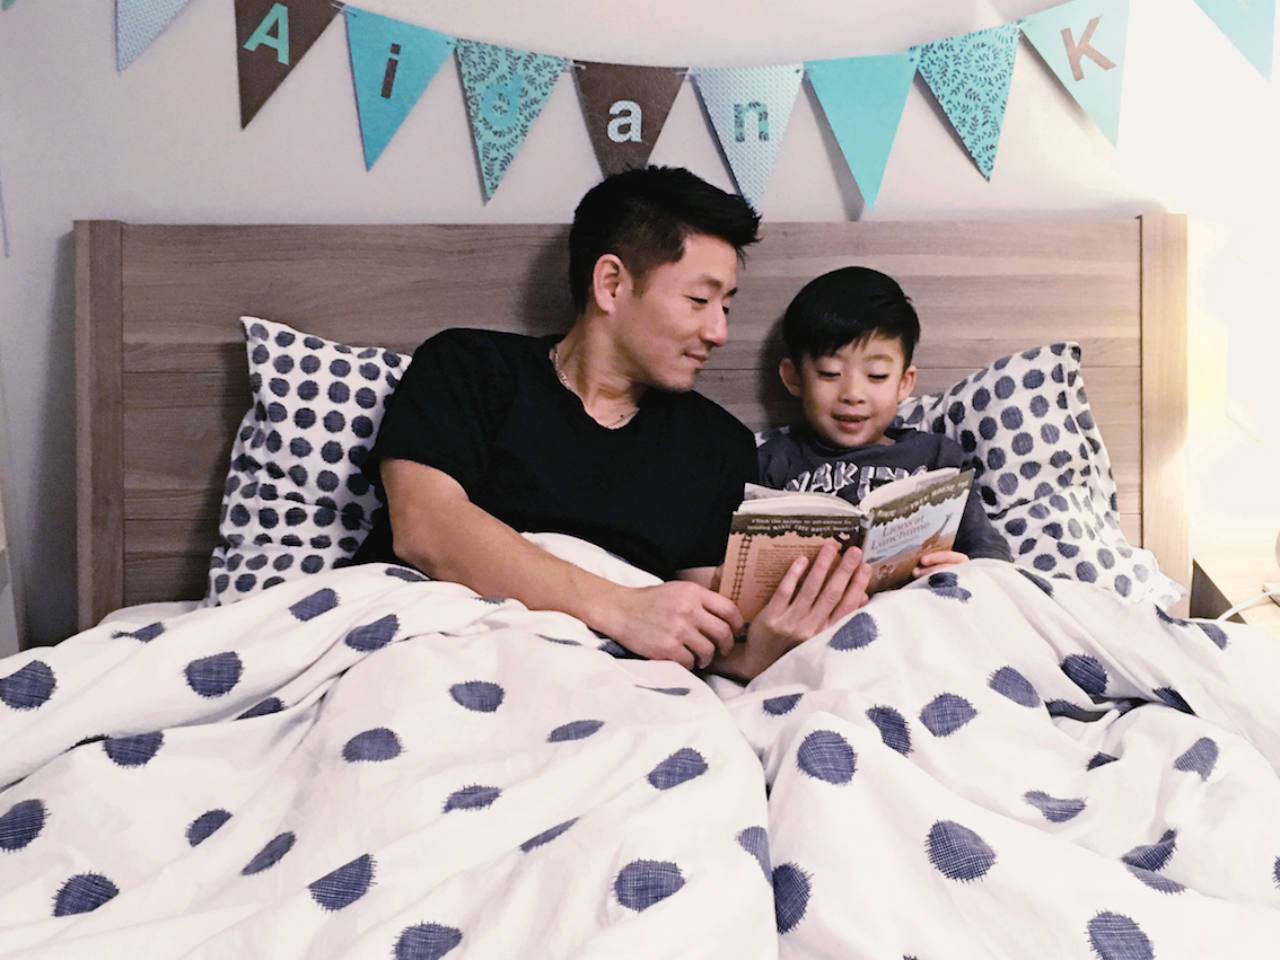 Father reading to his son in bed